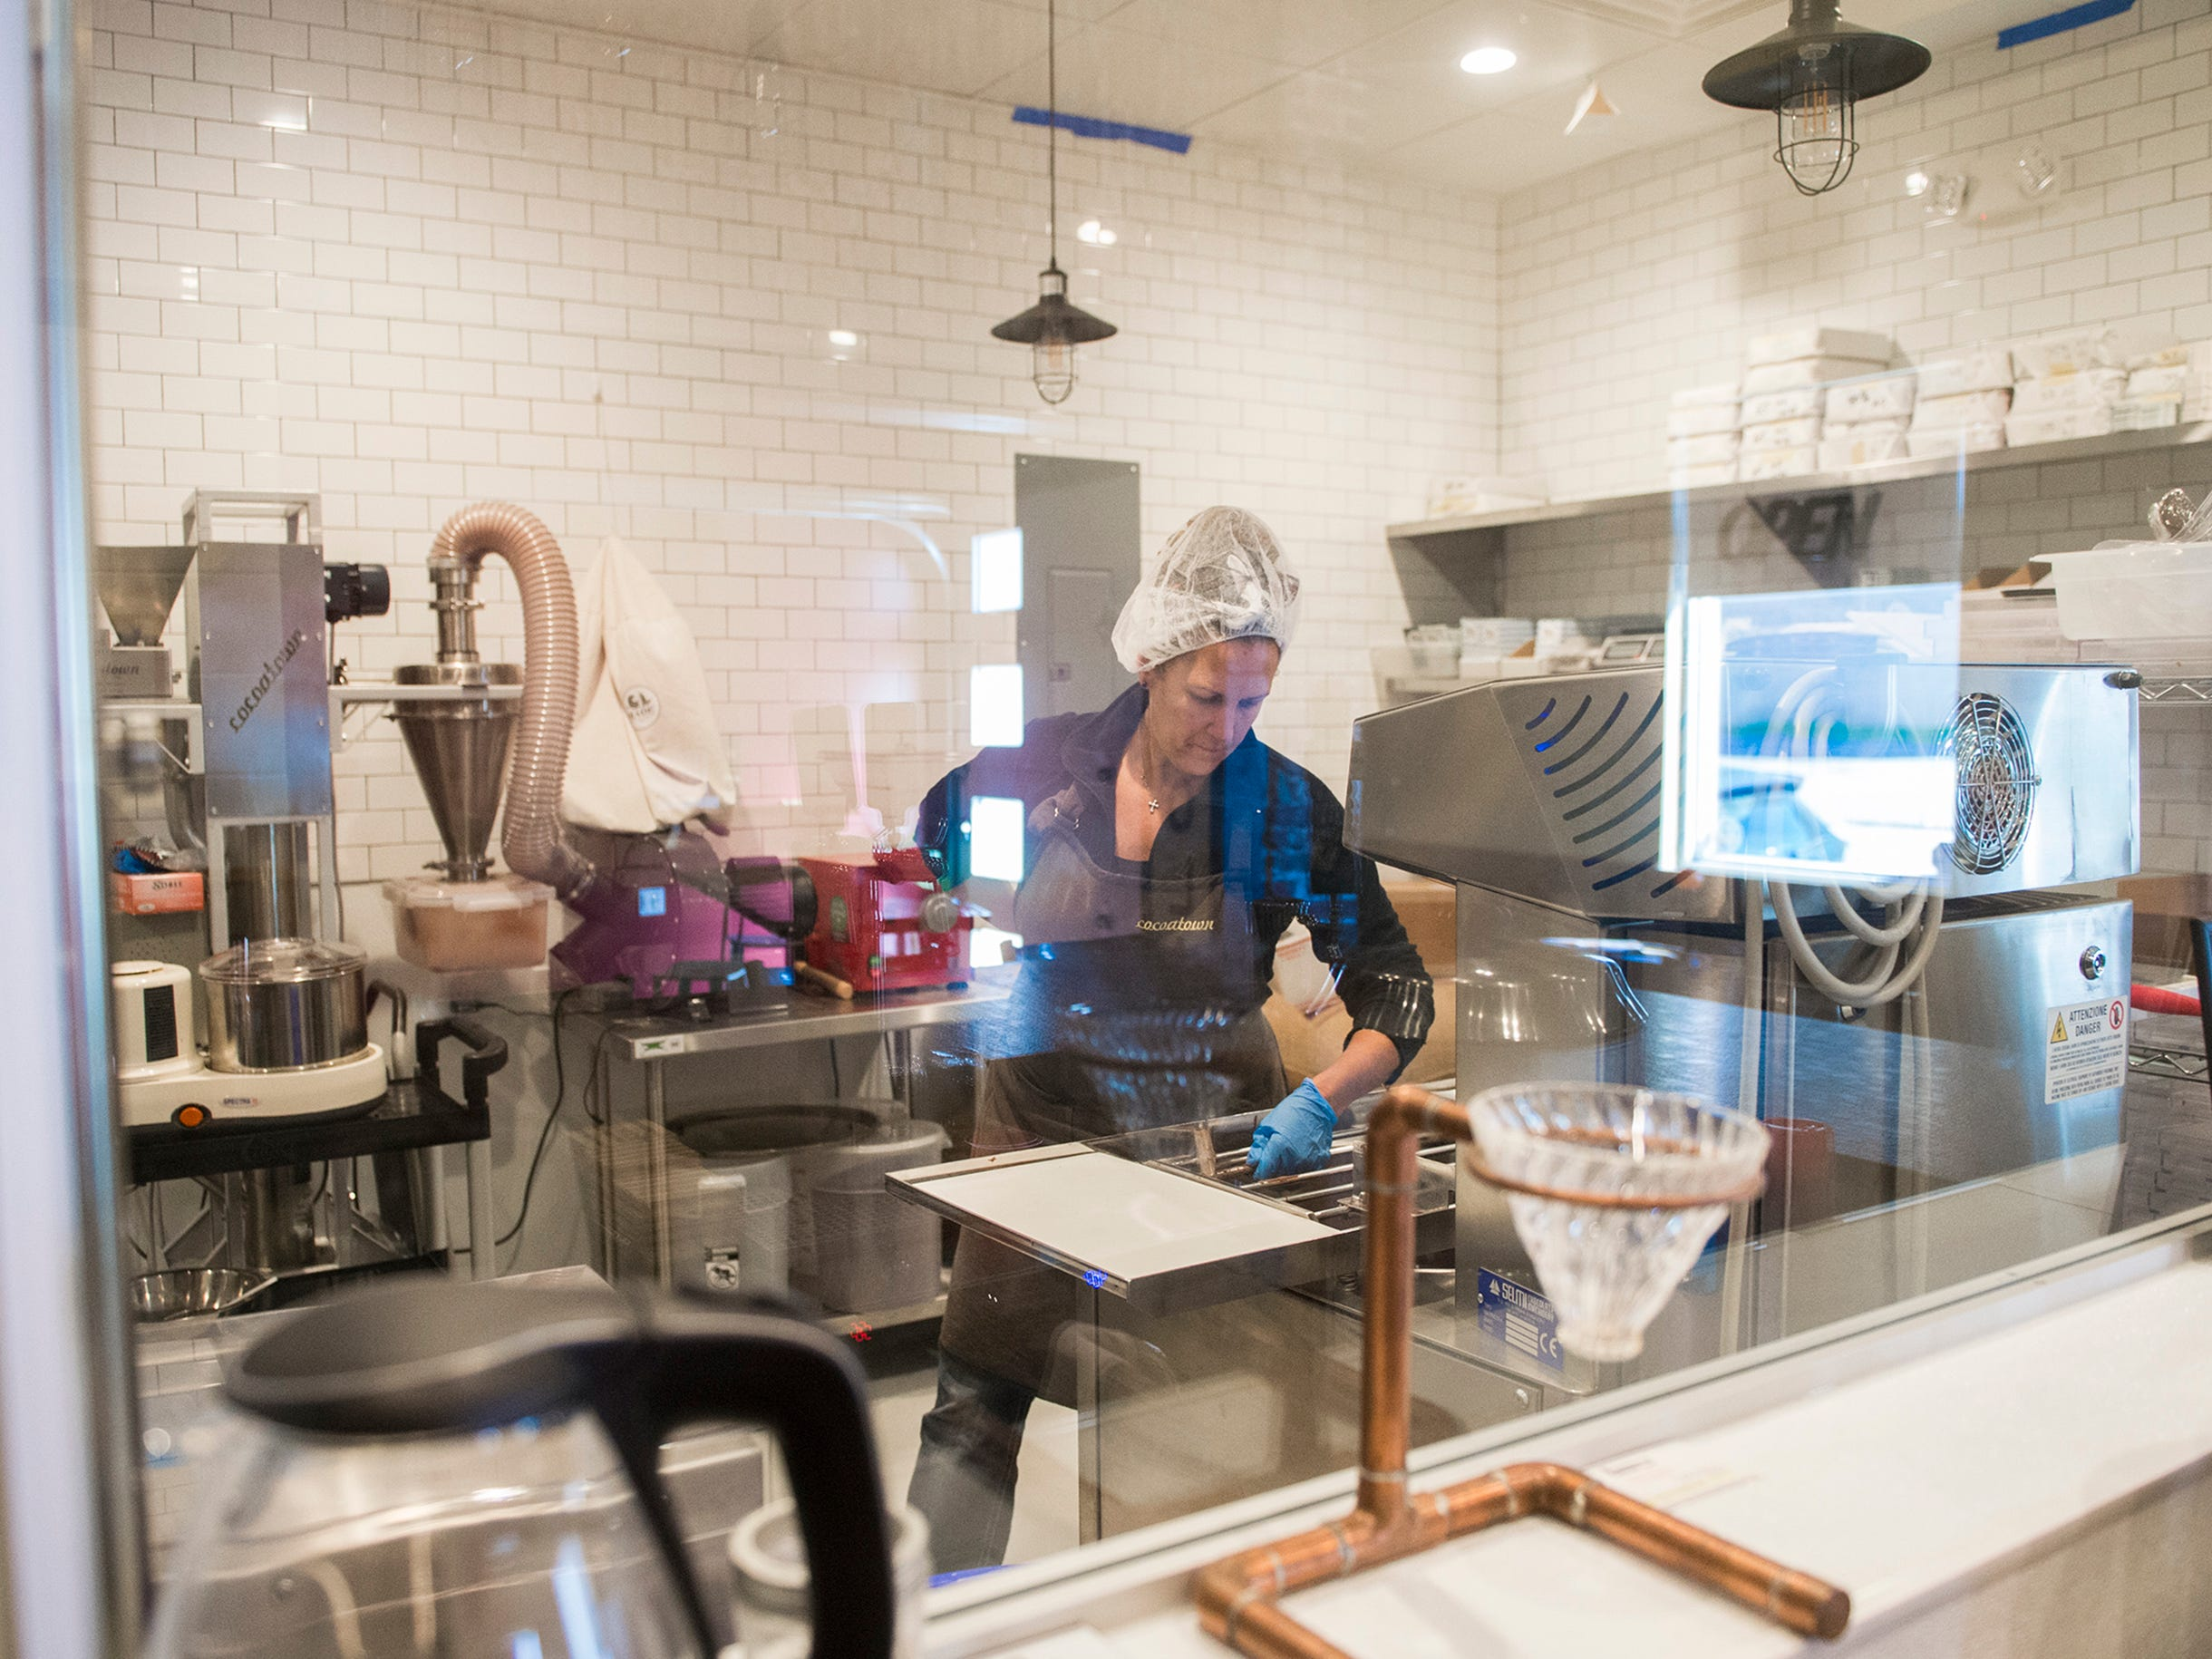 Owner Deborah Pellegrino works in the kitchen at MADE Atlantic City Chocolate Bar in Atlantic City, N.J.